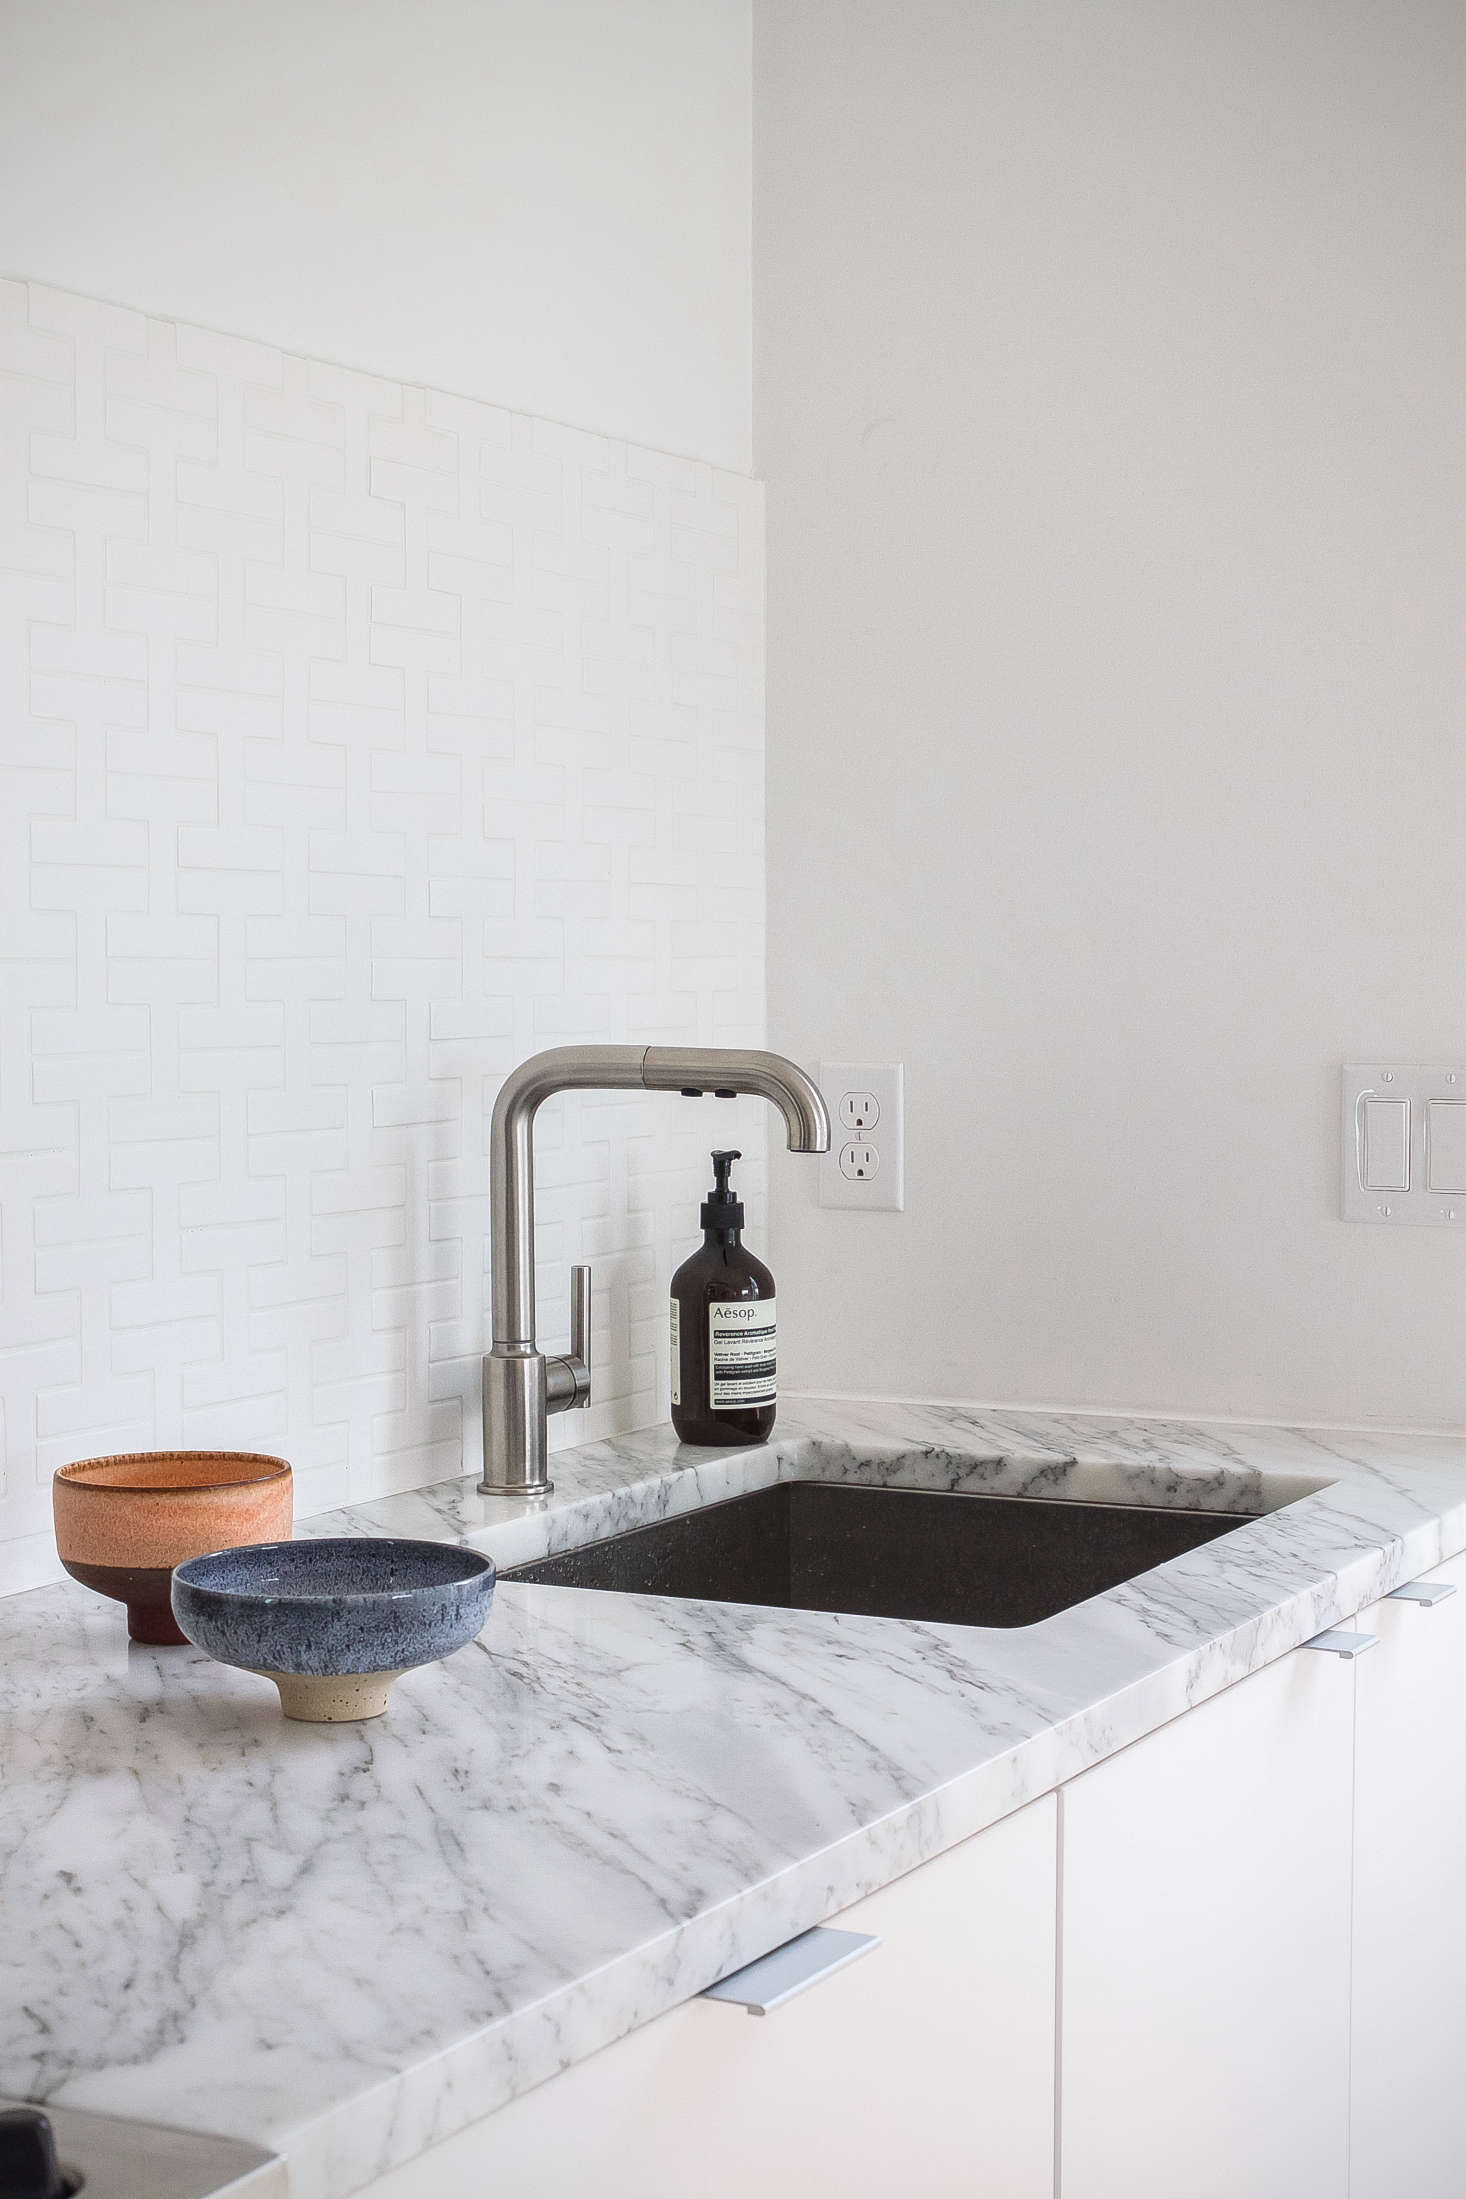 To complement their recessed sink, the couple selected Kohler&#8